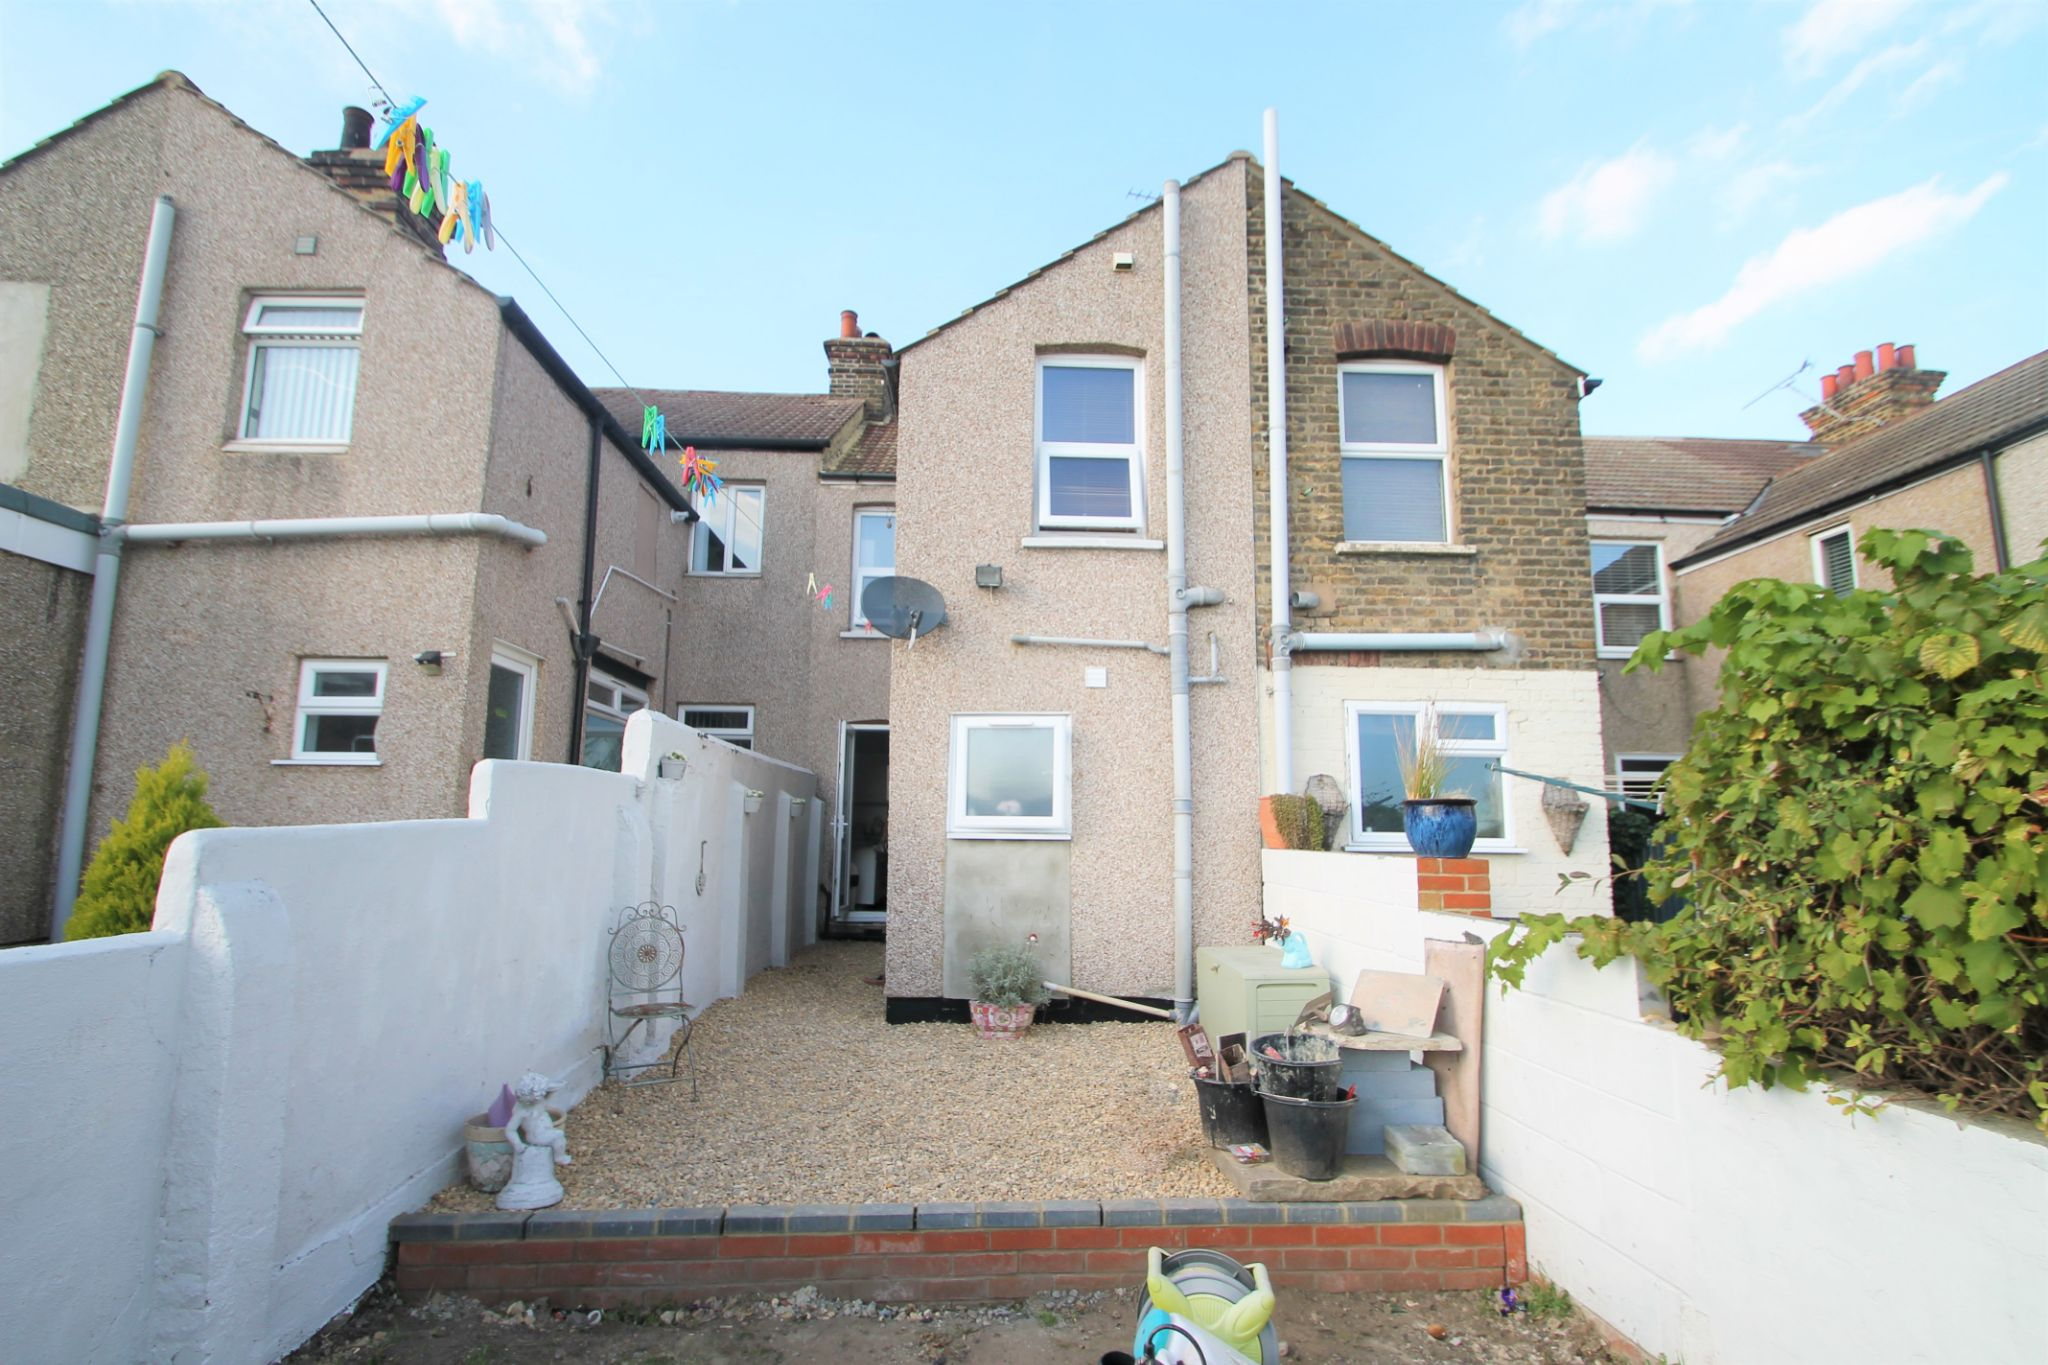 3 Bedroom Mid Terraced House For Sale - Rear View of Garden